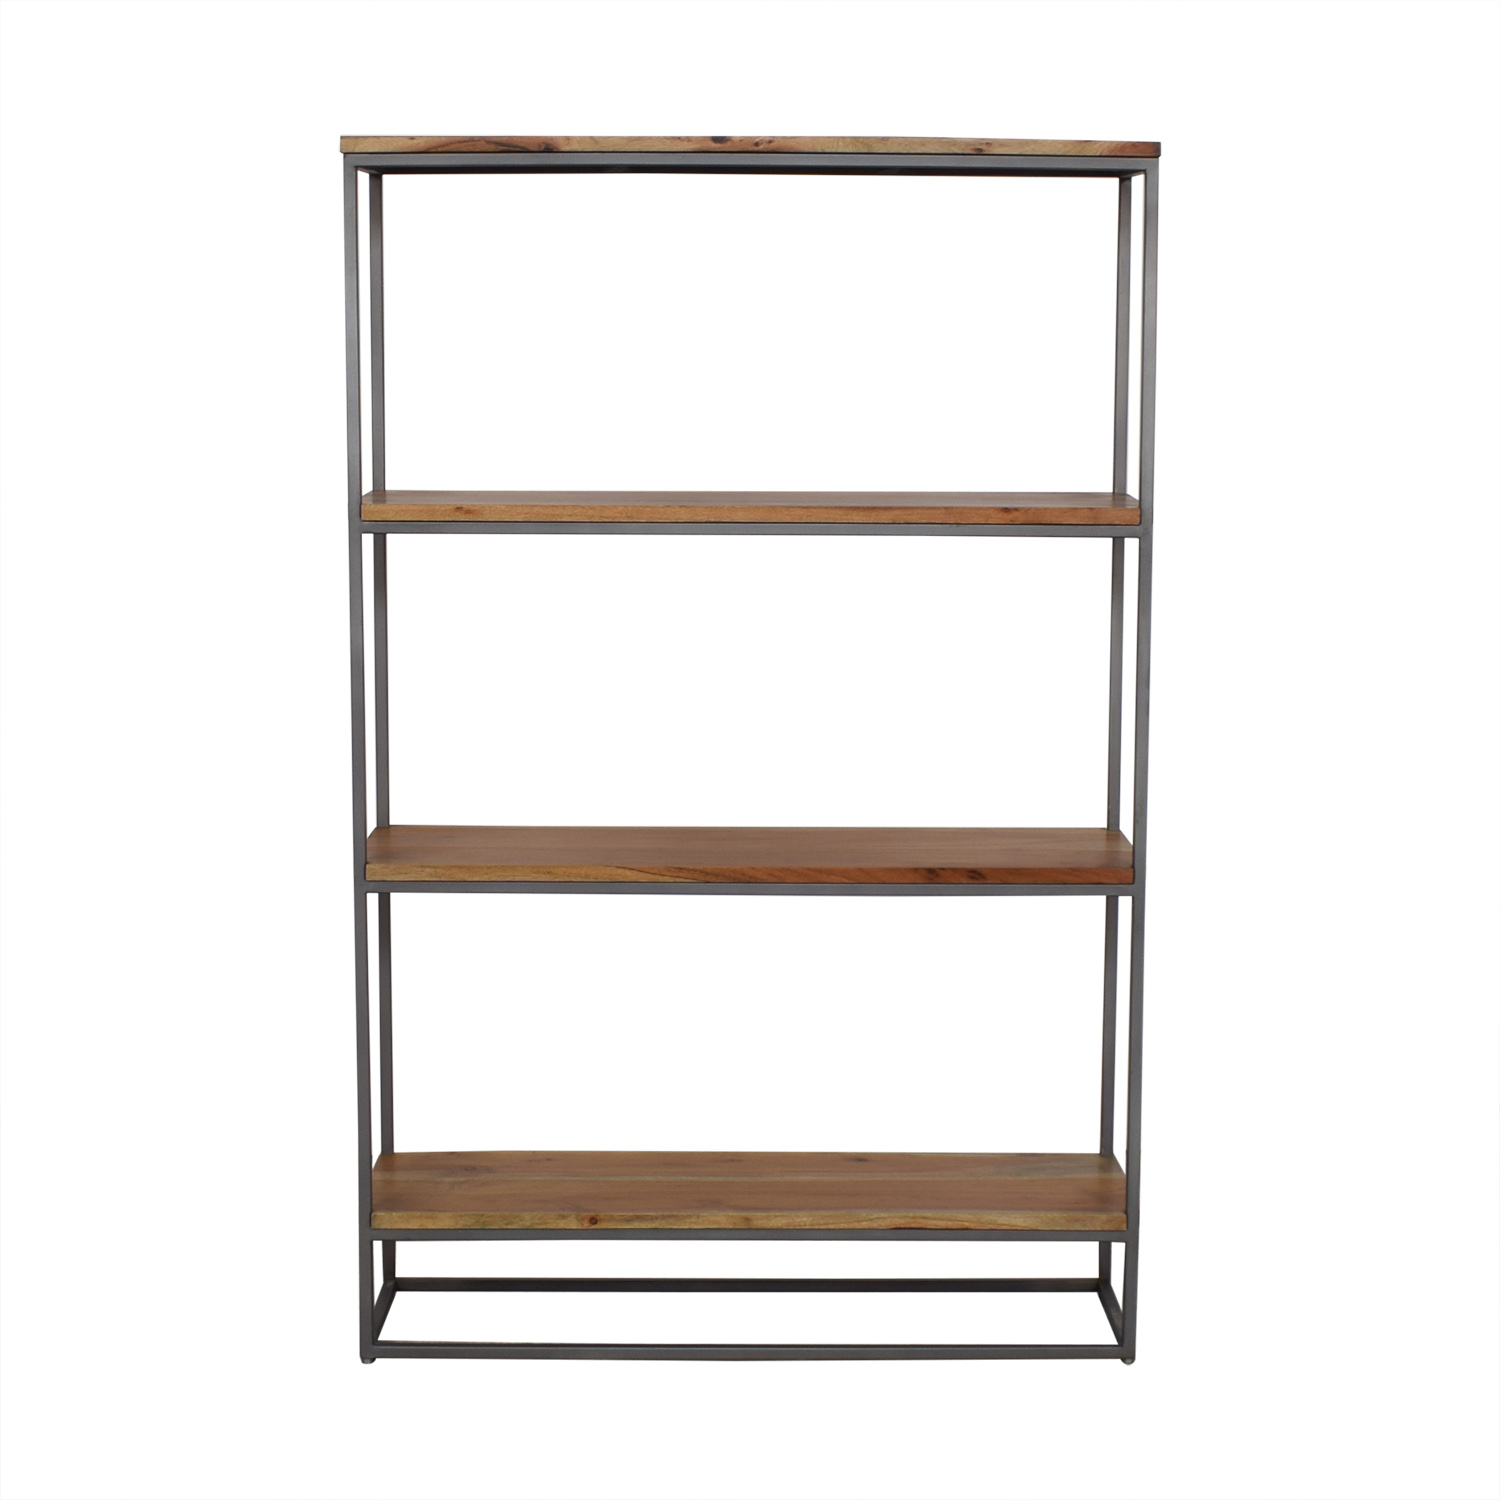 CB2 CB2 Framework Bookcase coupon